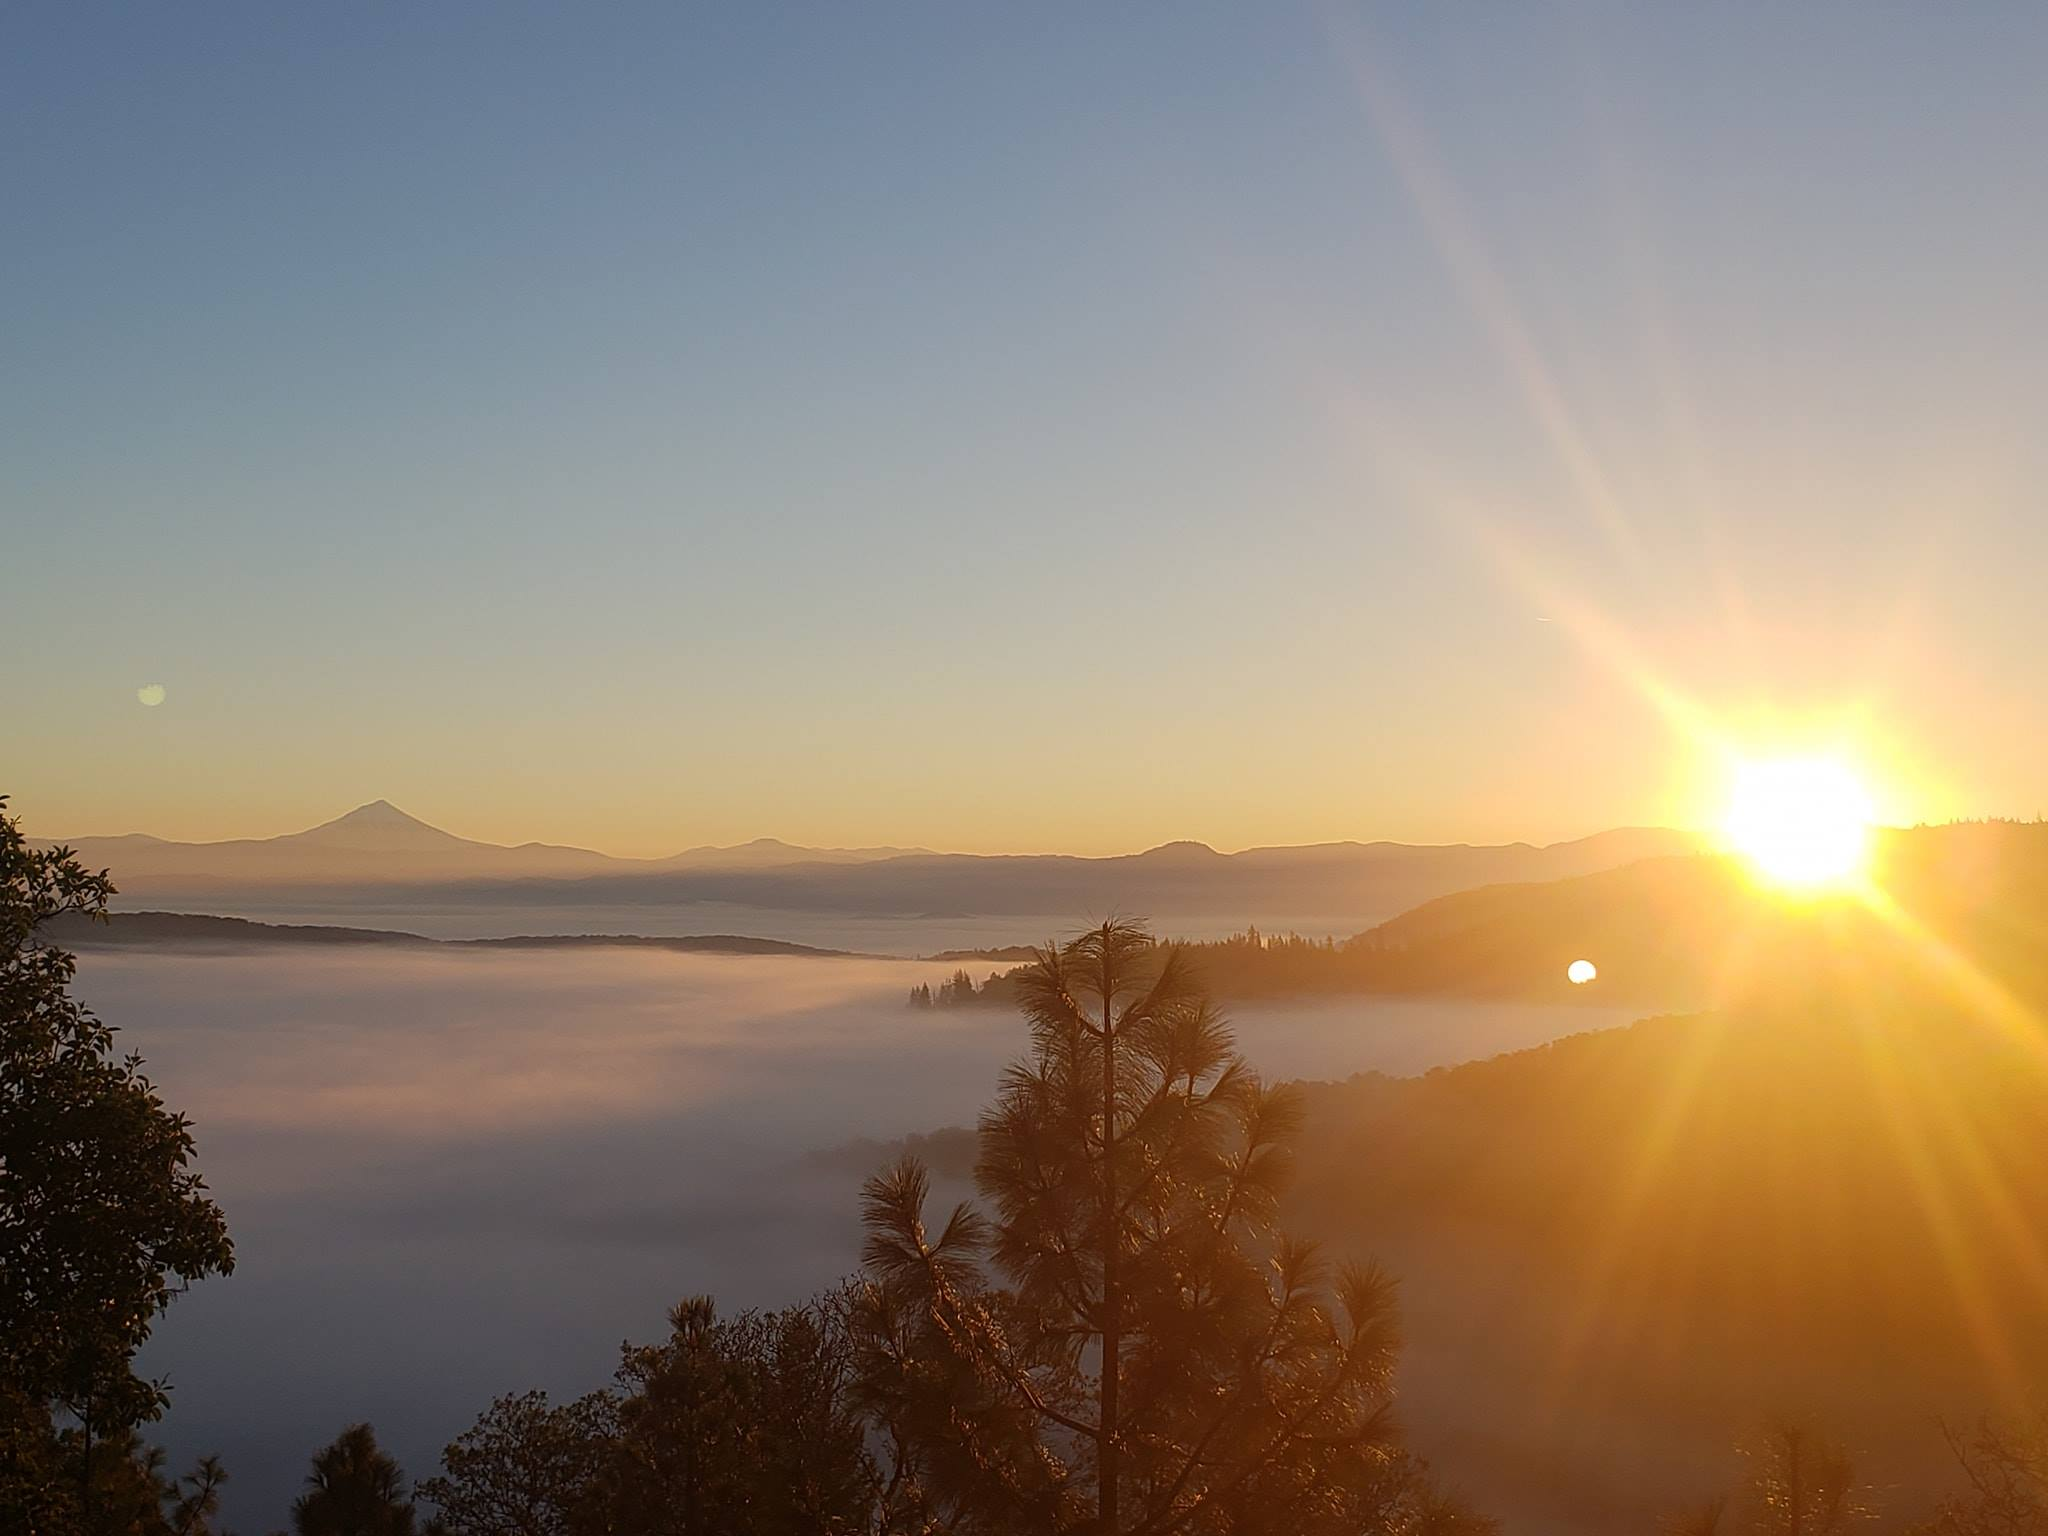 View of the sunrise over mountains and a valley of fog